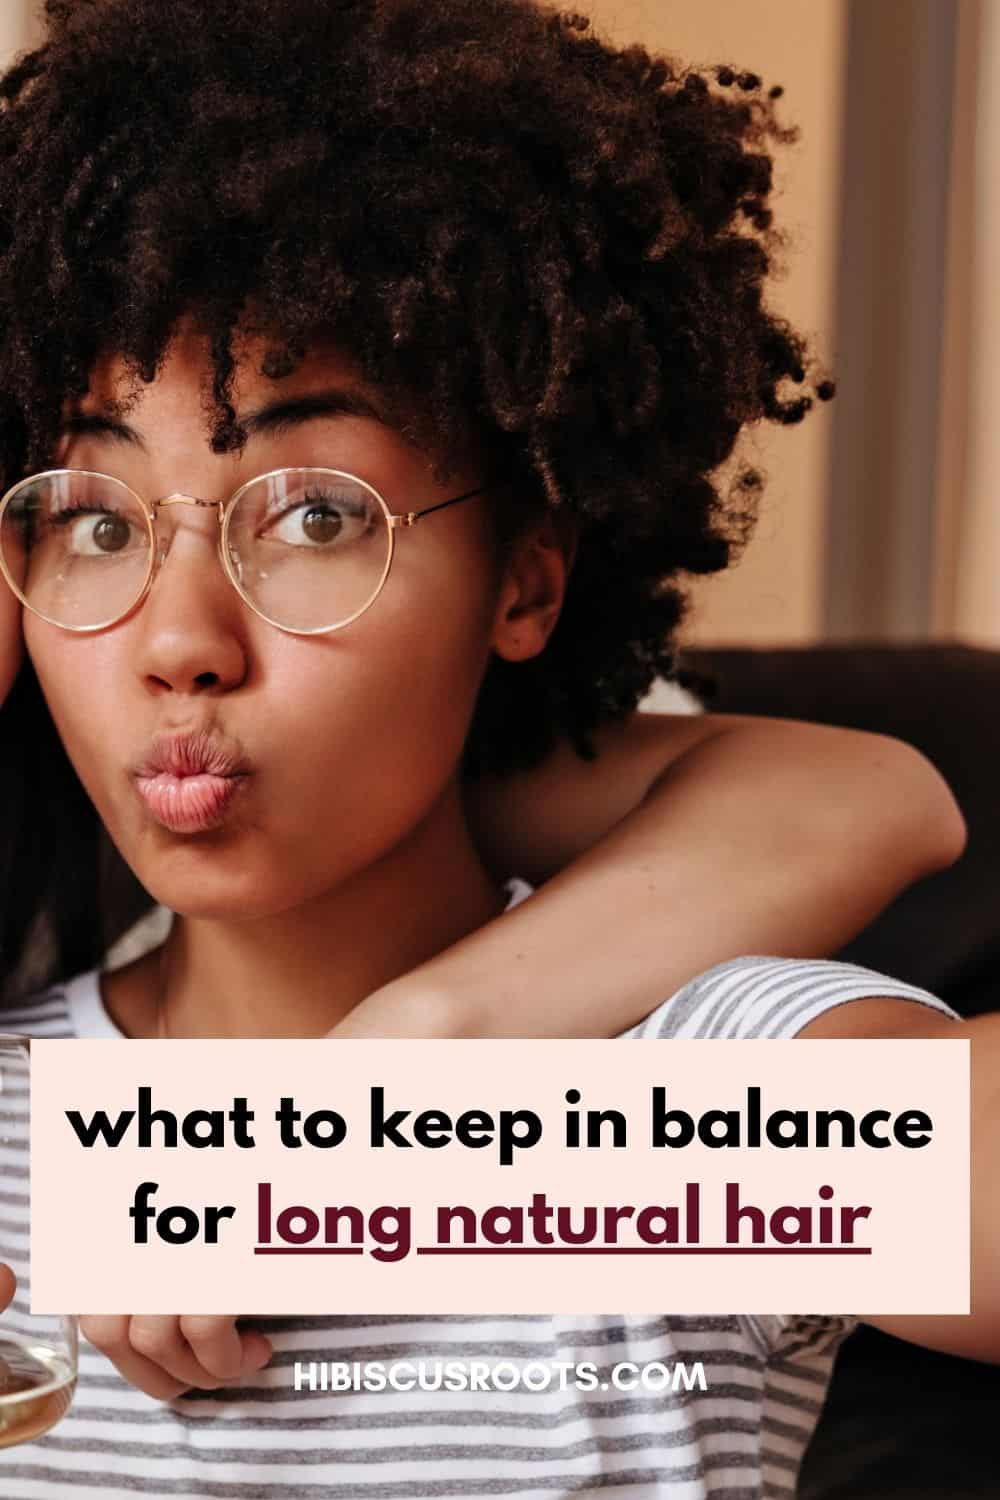 4 Elements to Keep in Balance for Long Natural Hair!